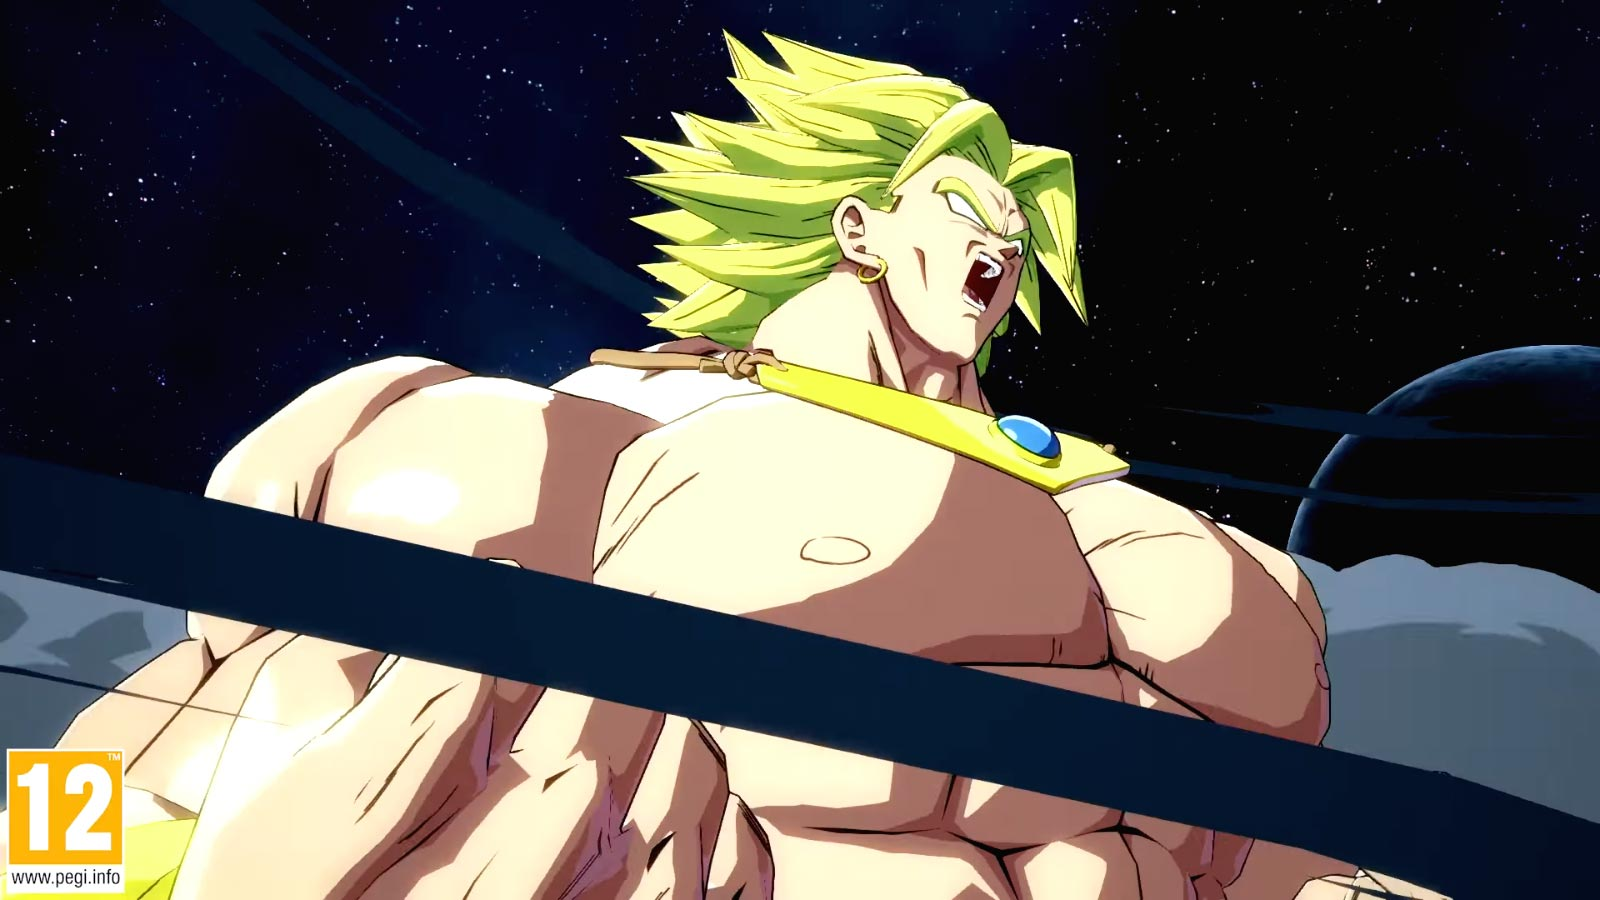 Broly in Dragon Ball FighterZ 2 out of 15 image gallery